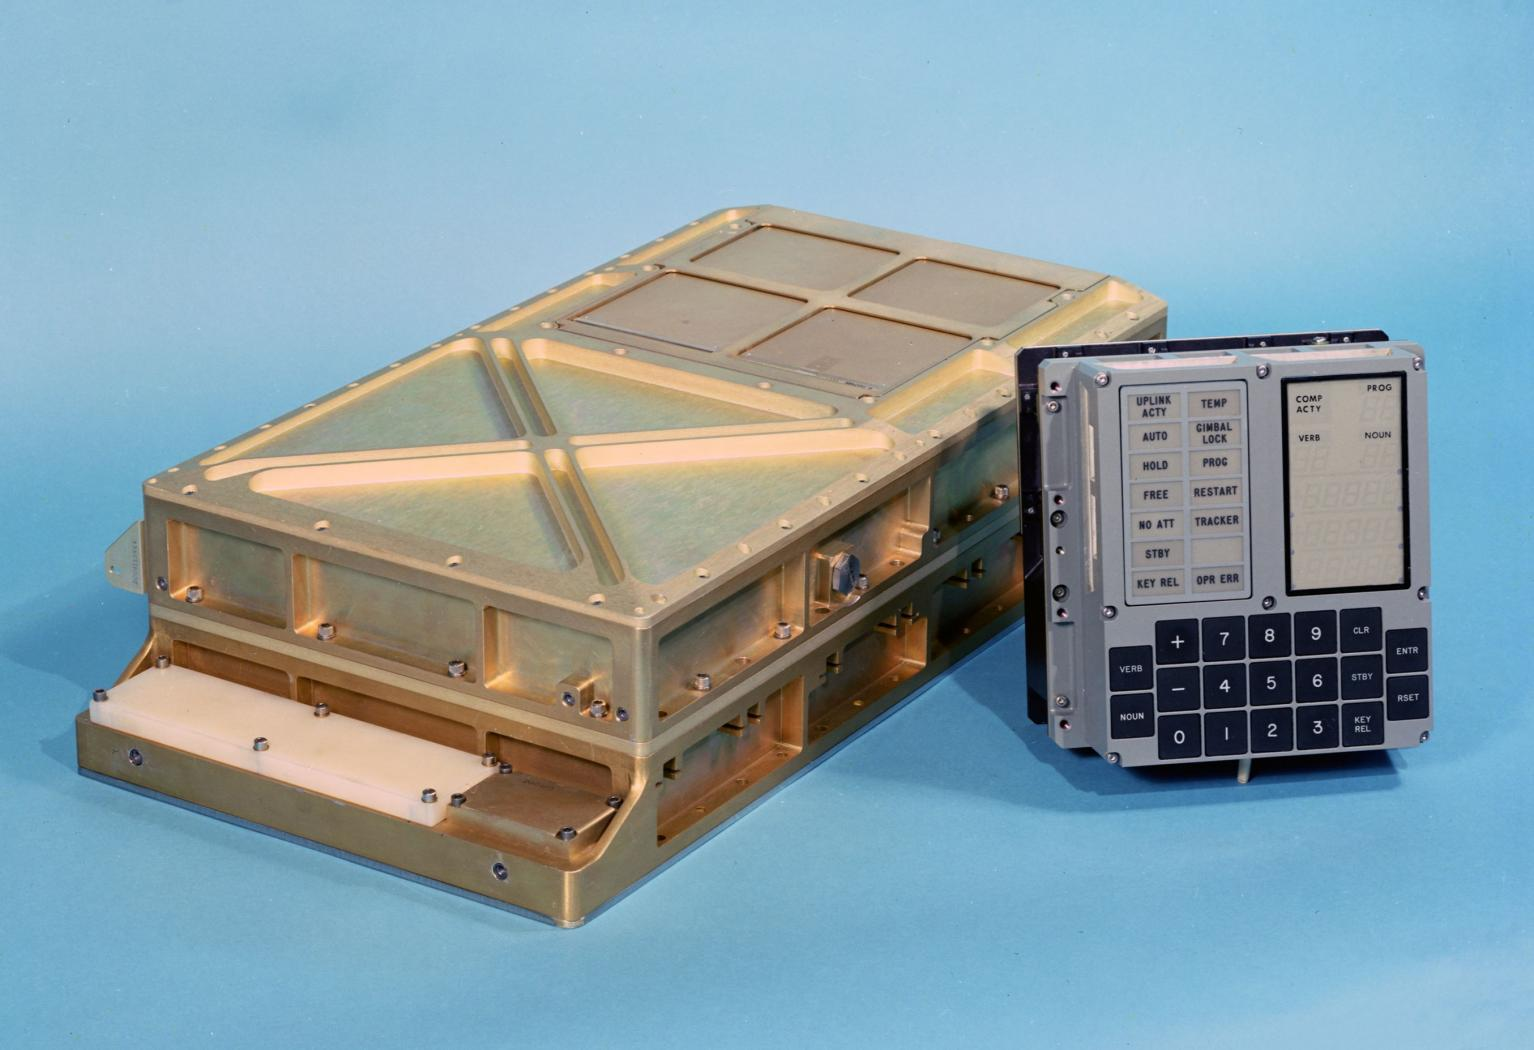 Apollo Guidance Computer Block II with DSKY